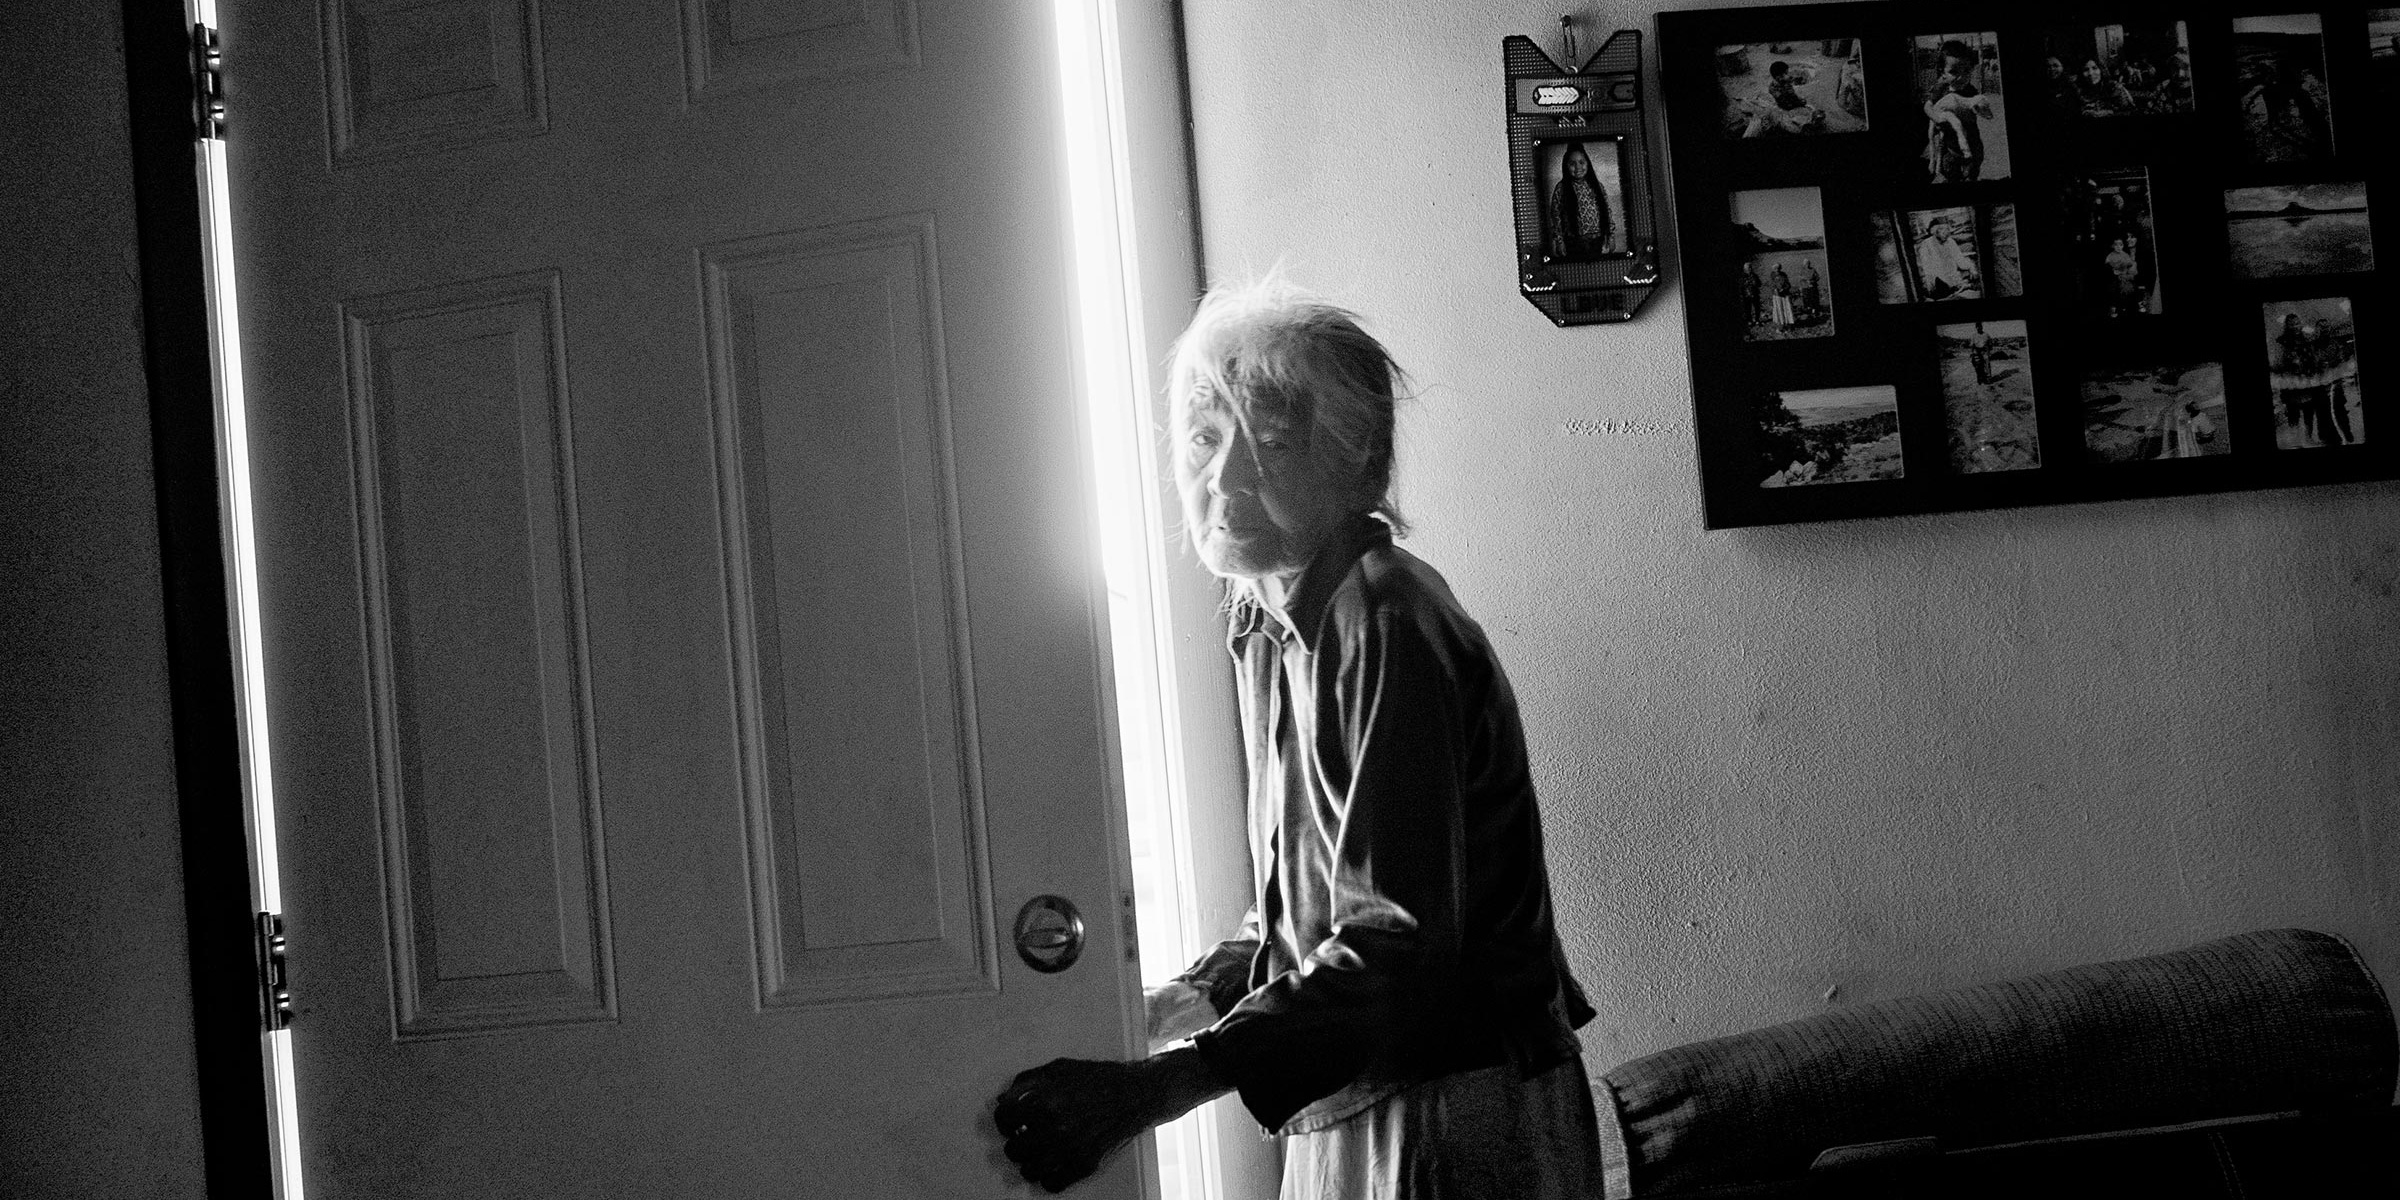 Gap, Ariz. | Nellie Yellowhorse, 90, at her family's ranch home in the Navajo Nation; she lives with her two elderly sisters in the house, which has no running water